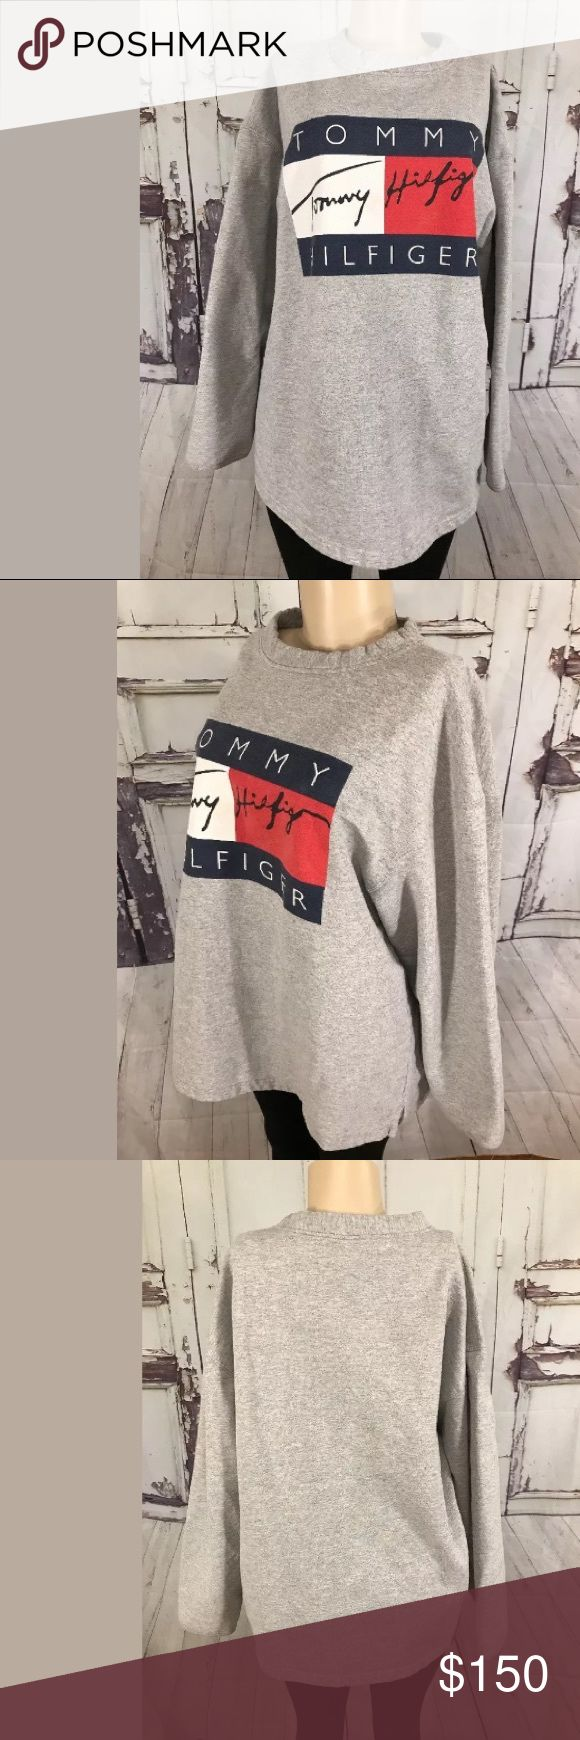 Tommy Hilfiger XL Big Flag Logo Sweatshirt Tommy Hilfiger